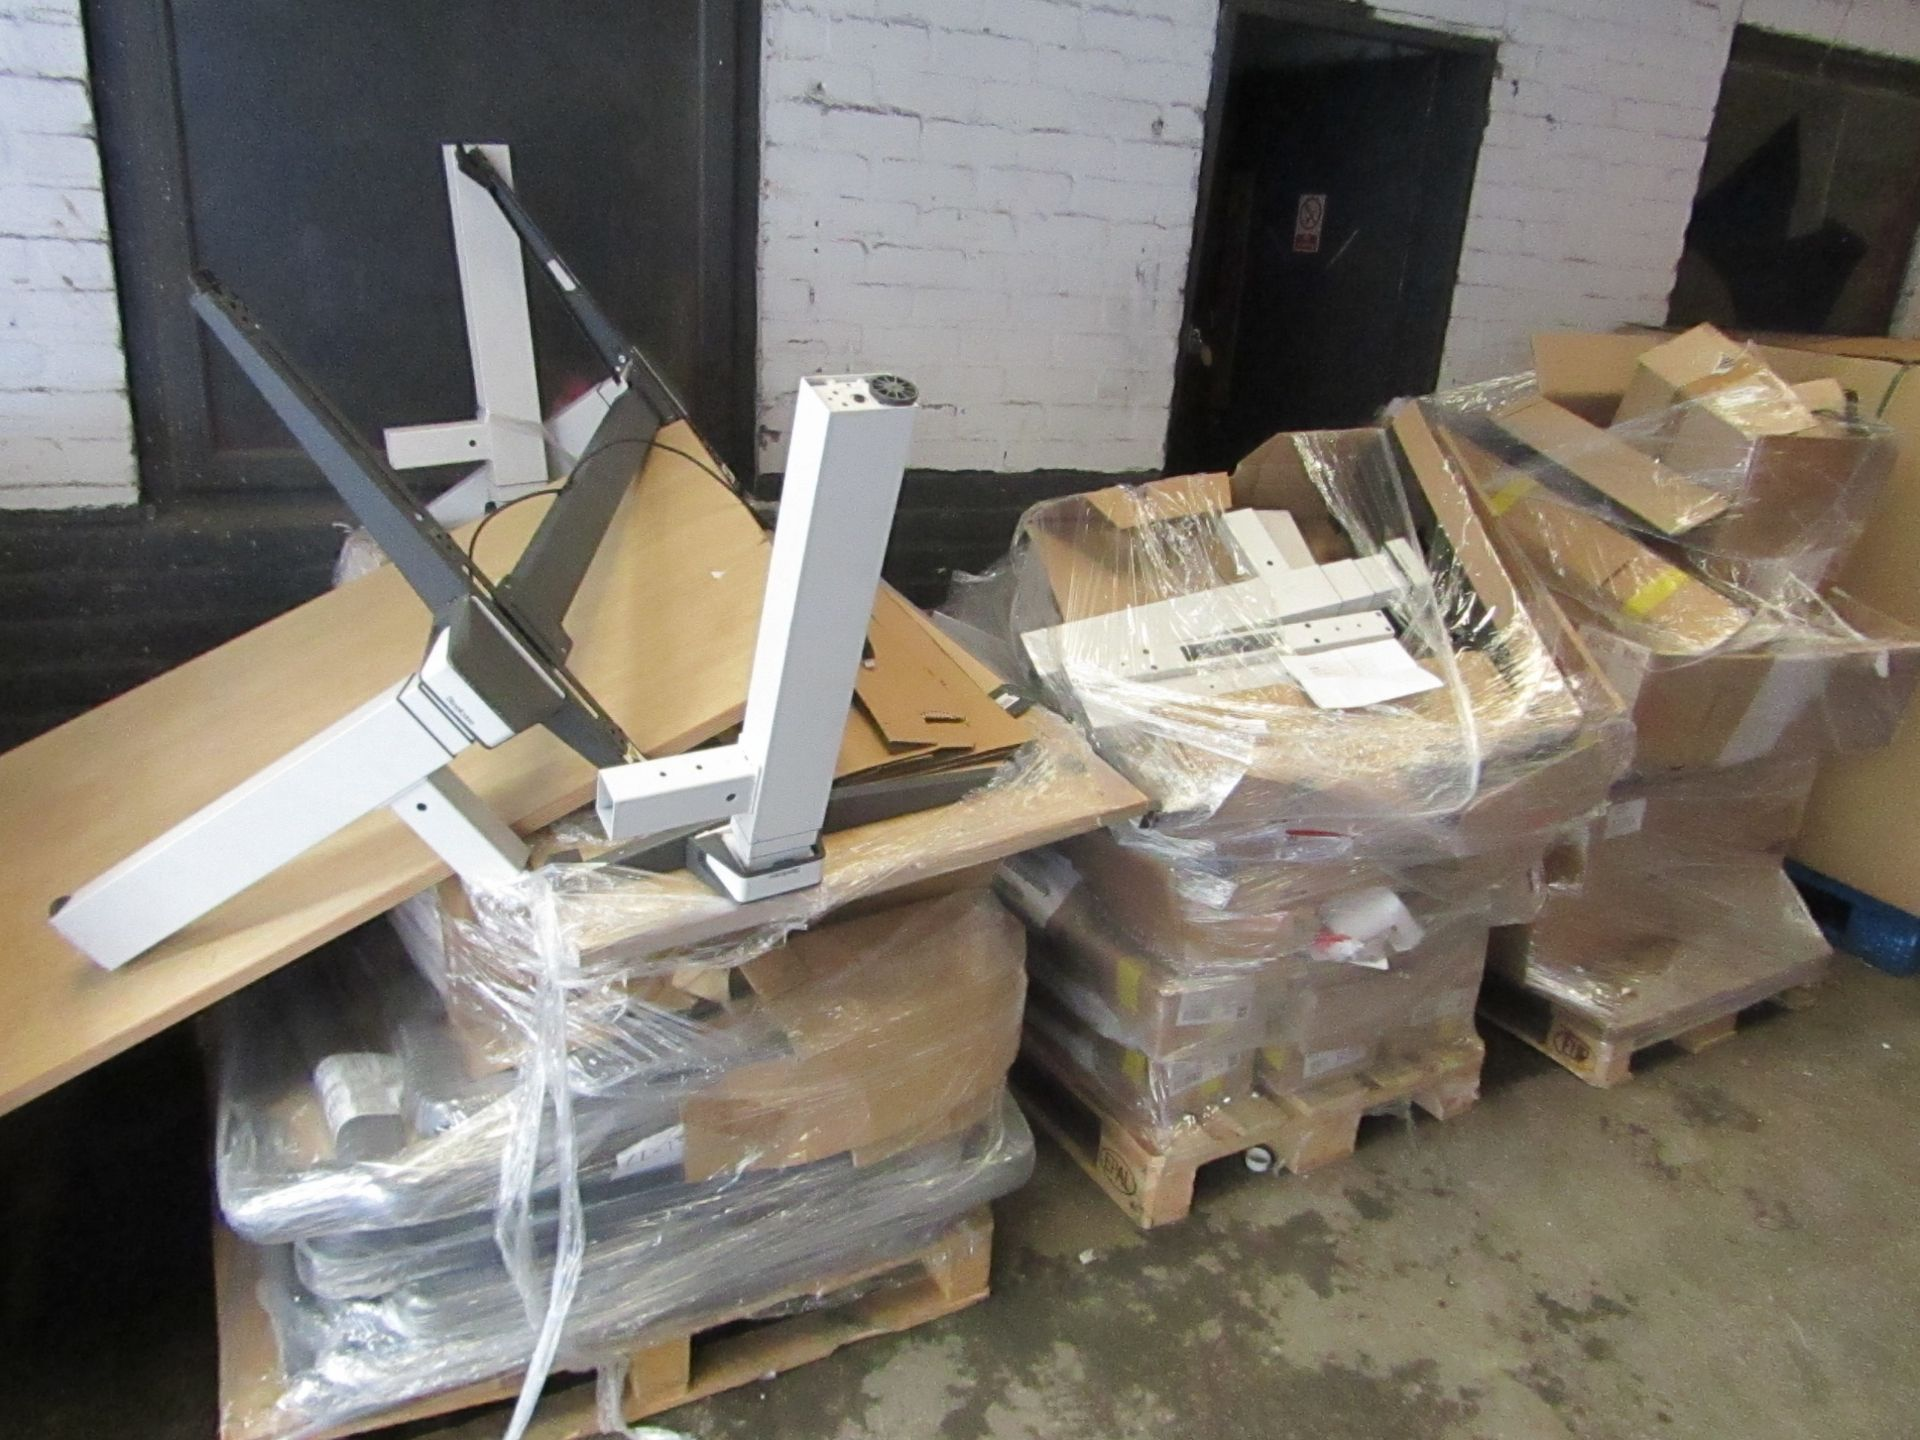 | 3X | PALLETS OF STEEL CASE HEIGHT ADJUSTABLE WORK STATIONS, ALL BER CUSTOMER RETURNS AND UNCHECKED